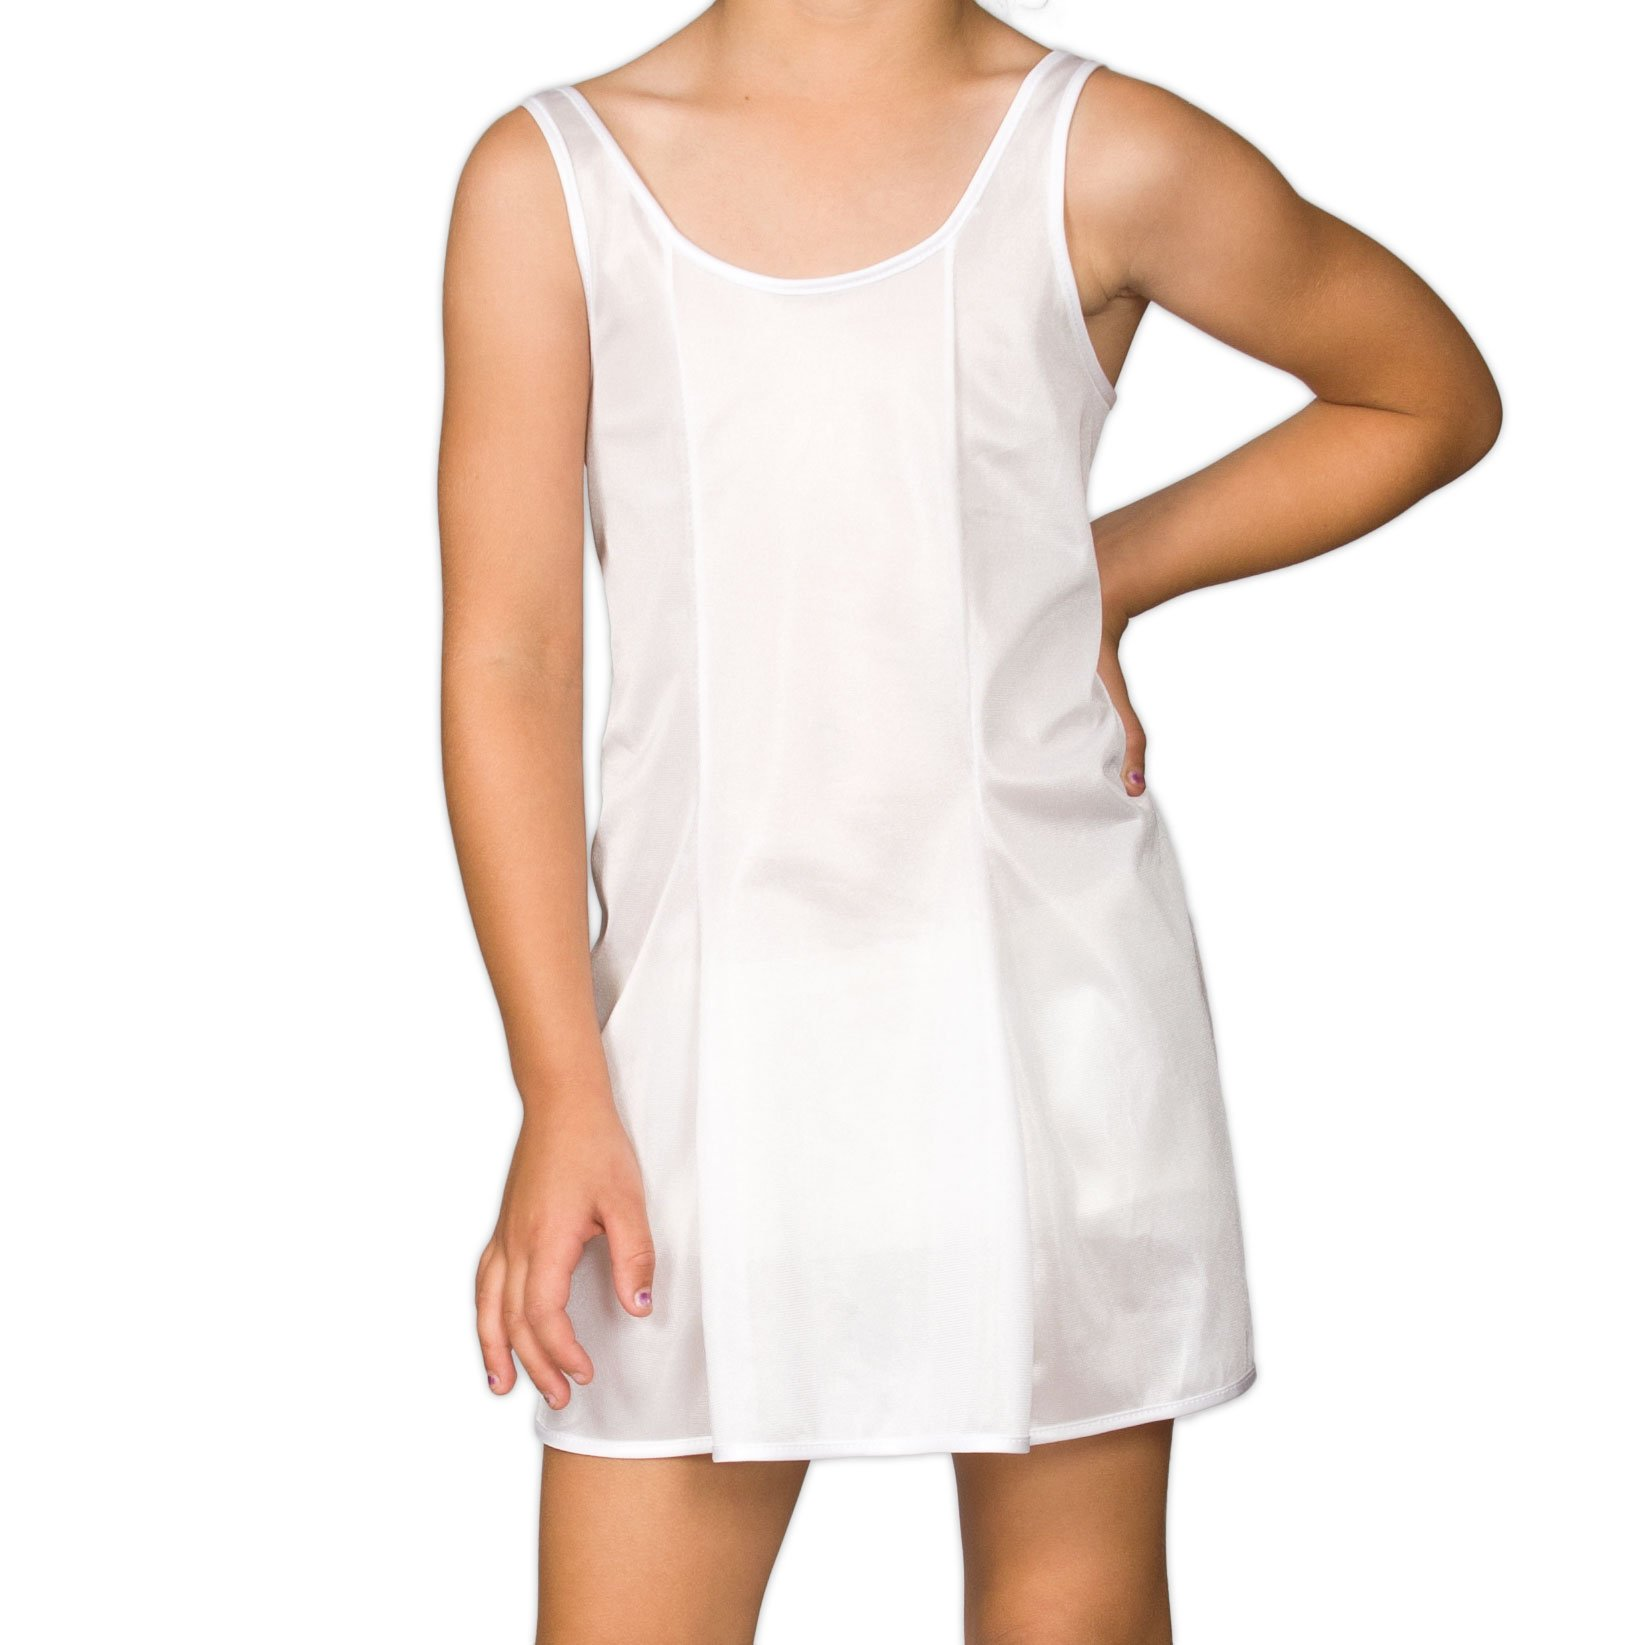 I.C. Collections Big Girls White Sleek Nylon Slip, 8